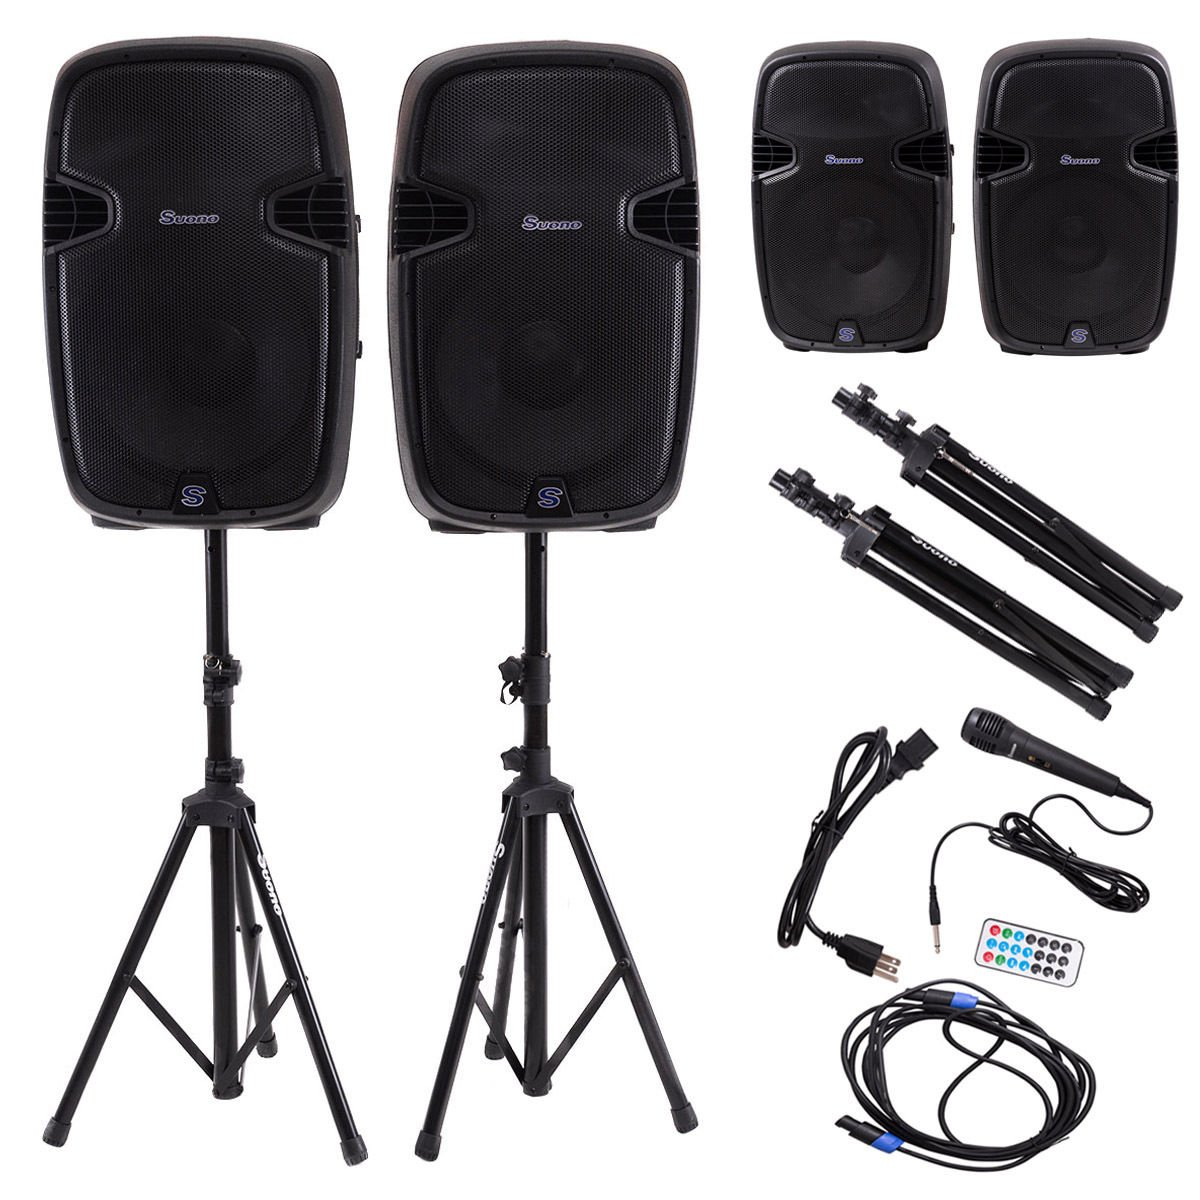 """Suono 15"""" Dual Powered Speakers, 3000W 2-Way Portable Loud Speaker With Stands and Microphone (Active+Passive Speakers + Stands)"""